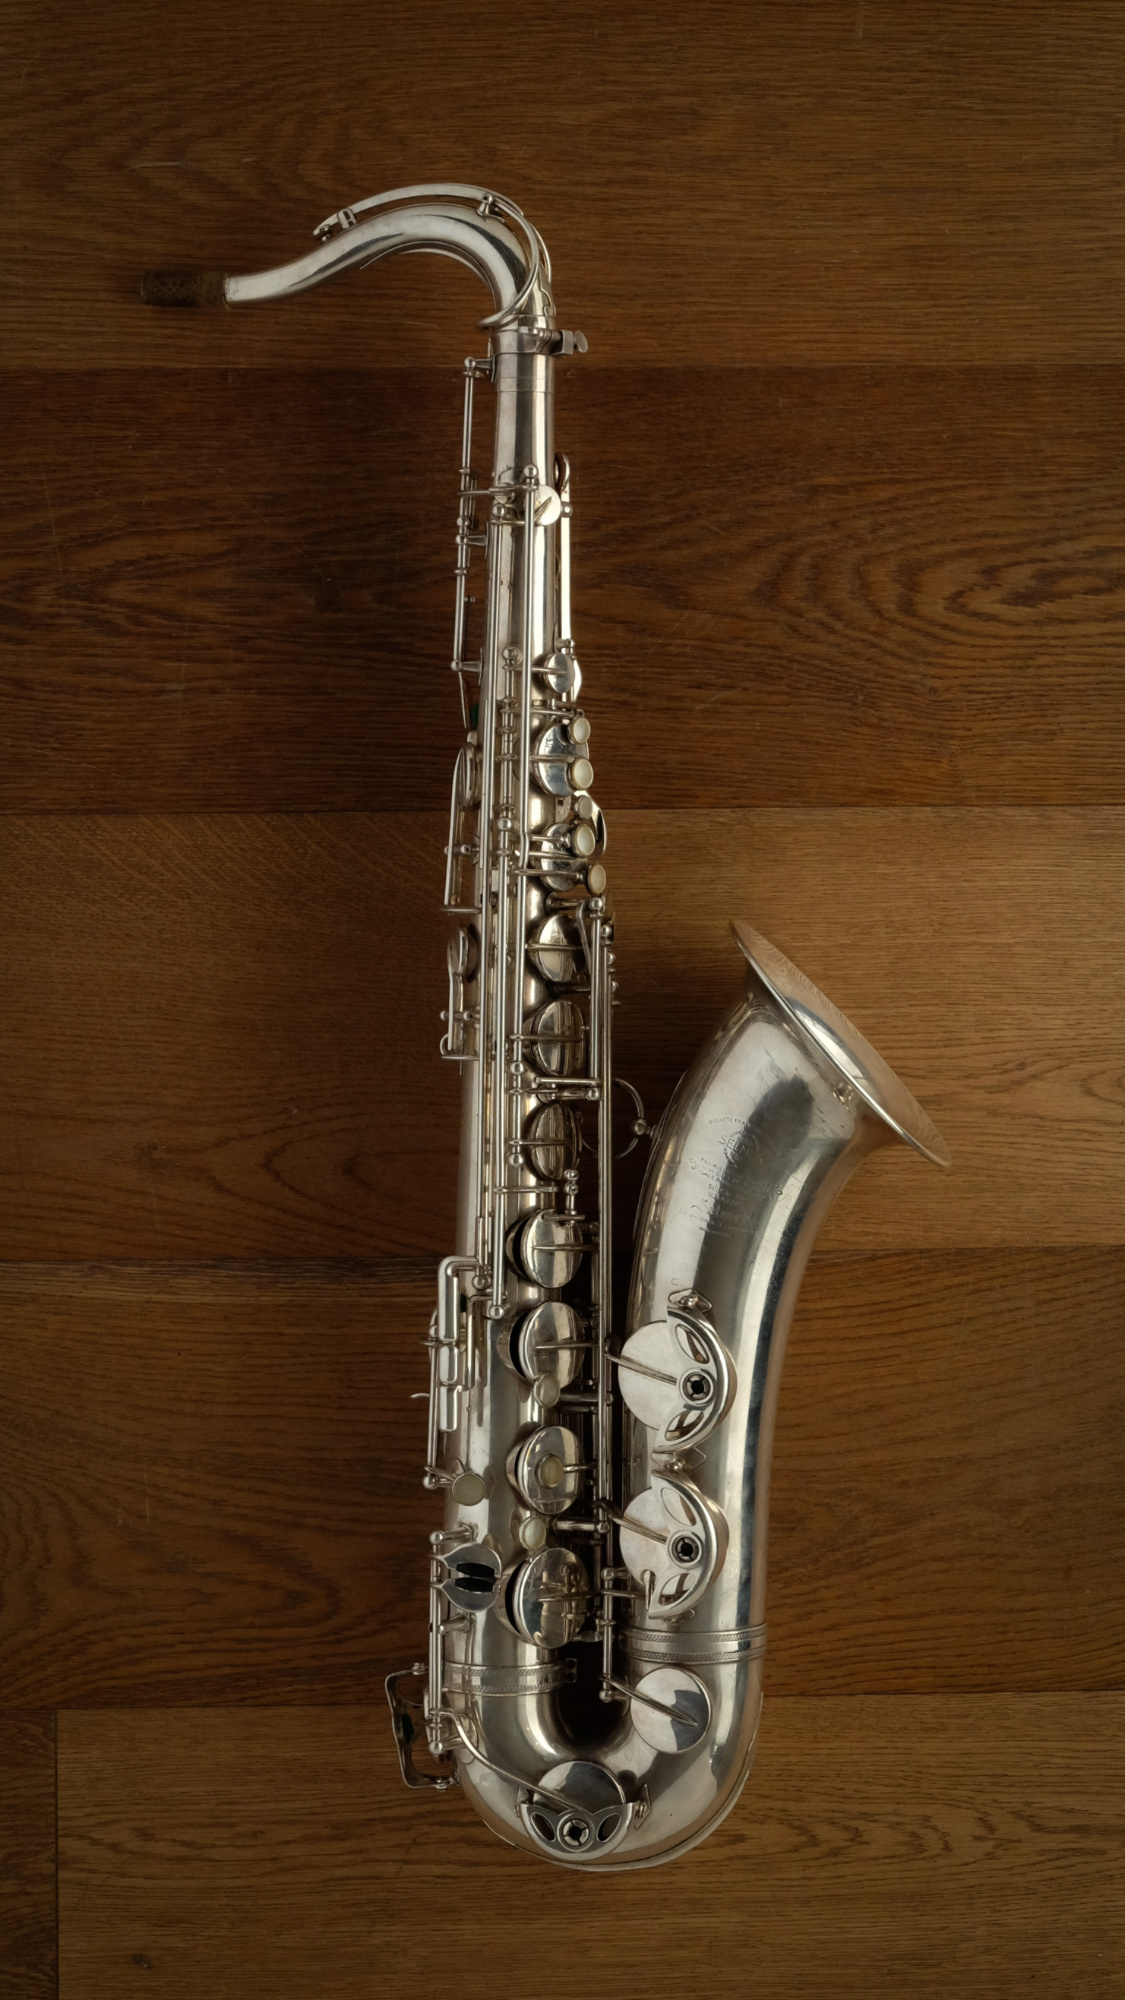 (Used) Selmer Super Balanced Action 40*** Silver Plated Tenor Sax